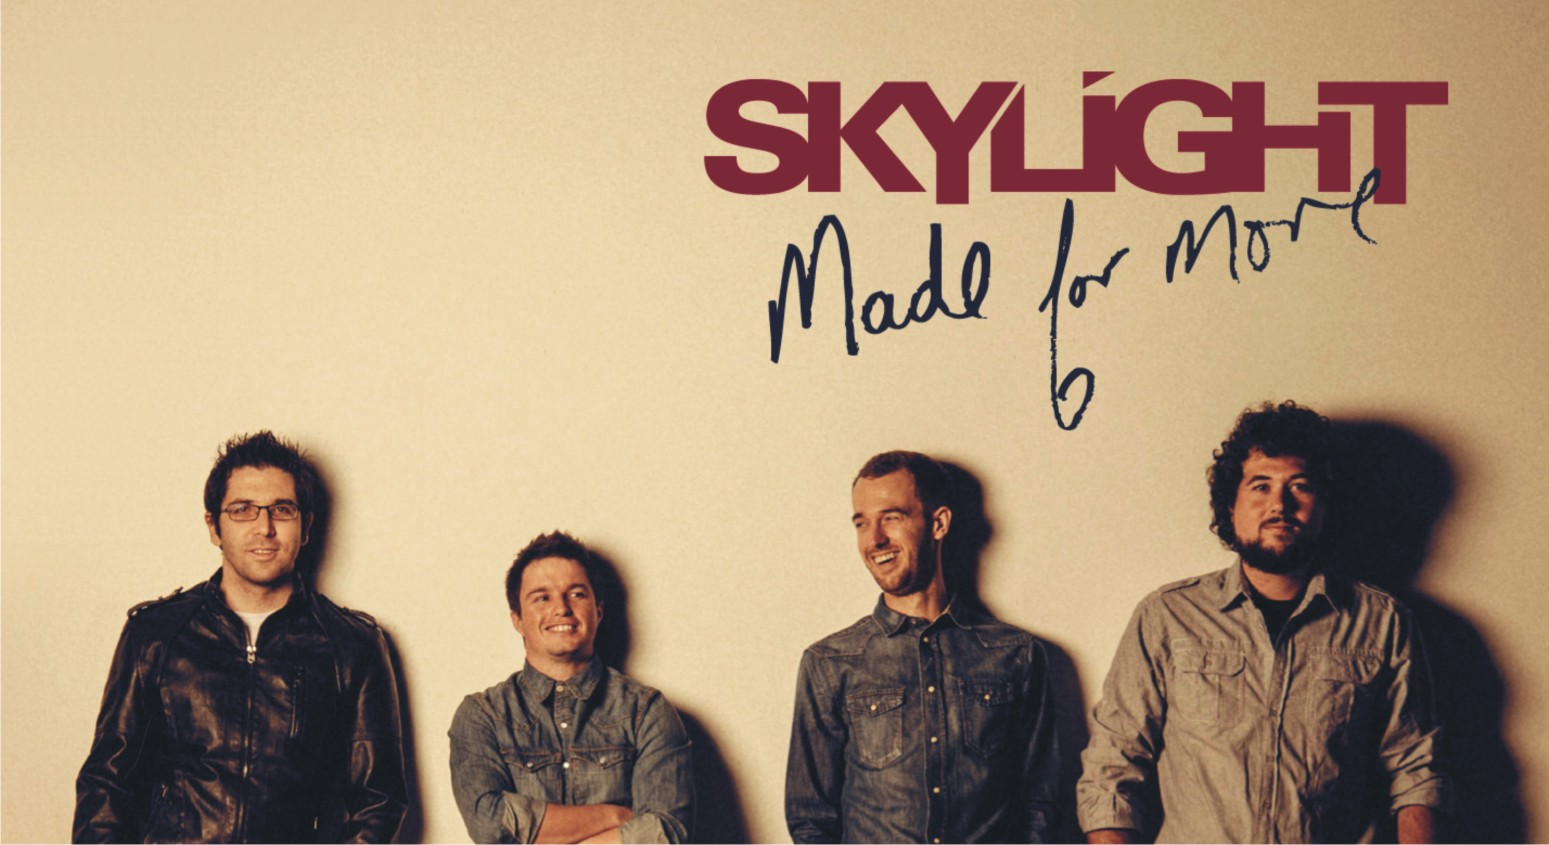 Skylight release their 3rd single to their South African music fans